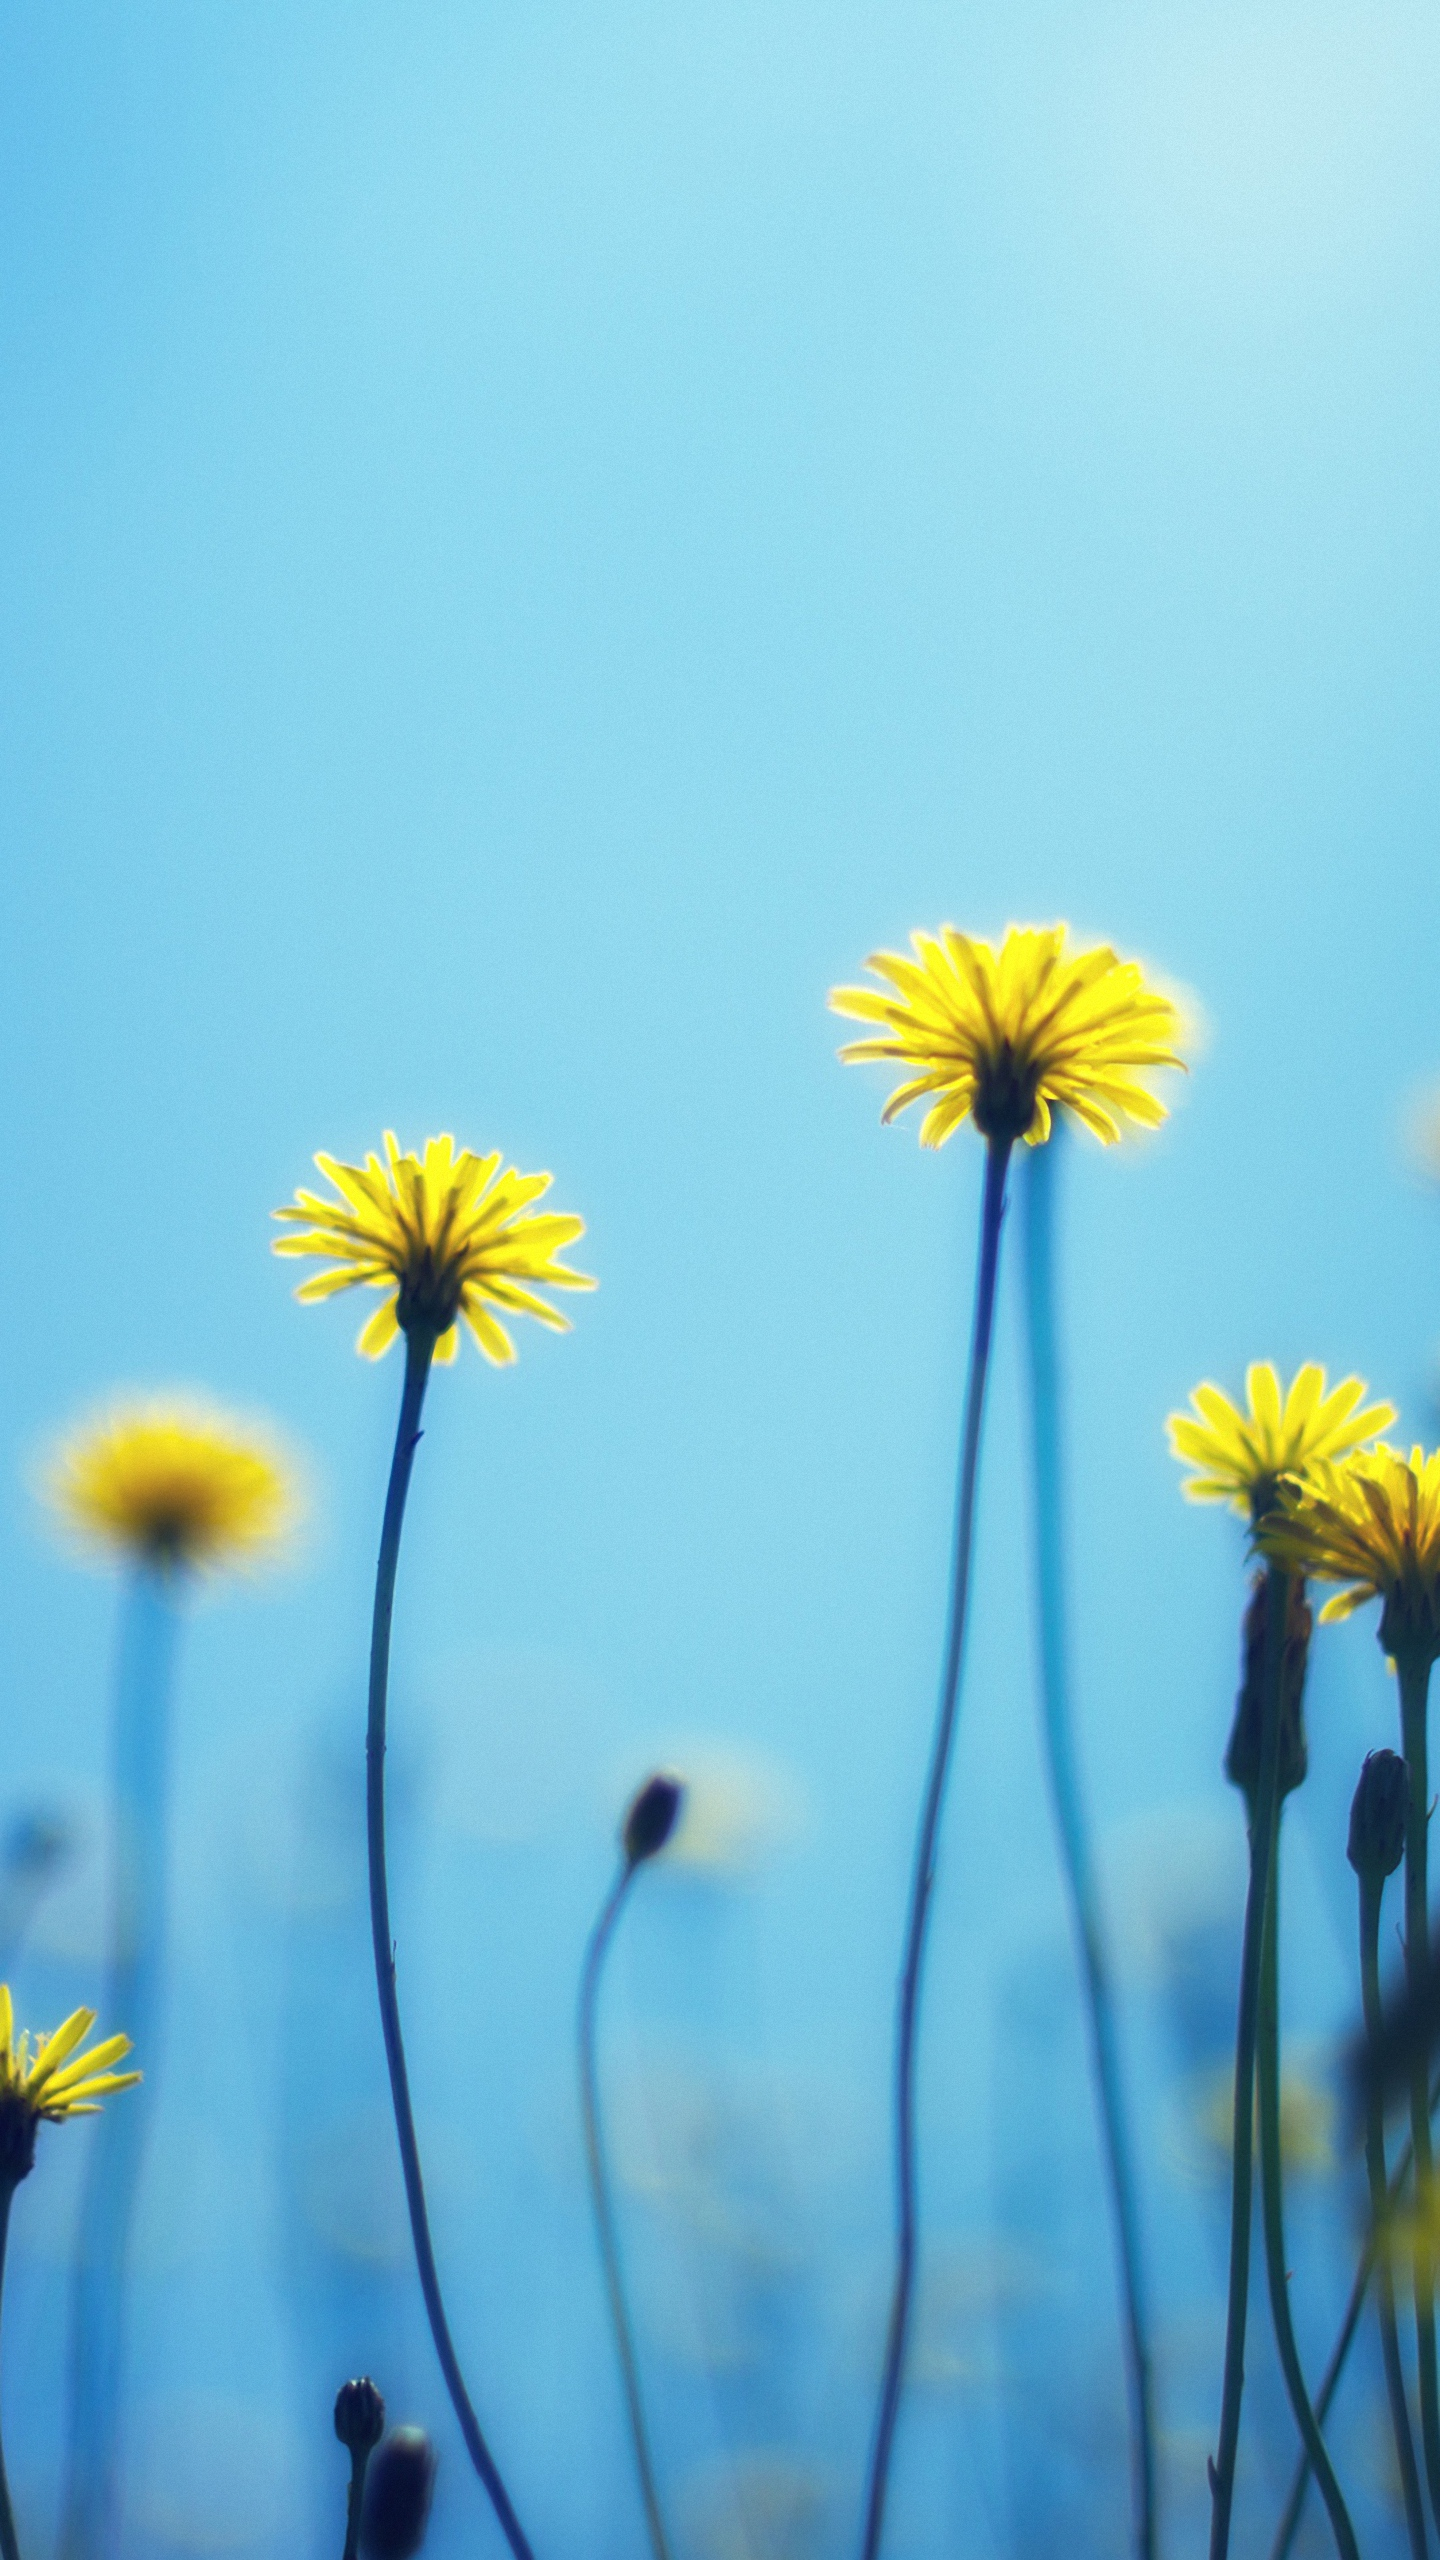 download flower dandelion wallpaper for samsung galaxy note 4 1440x2560